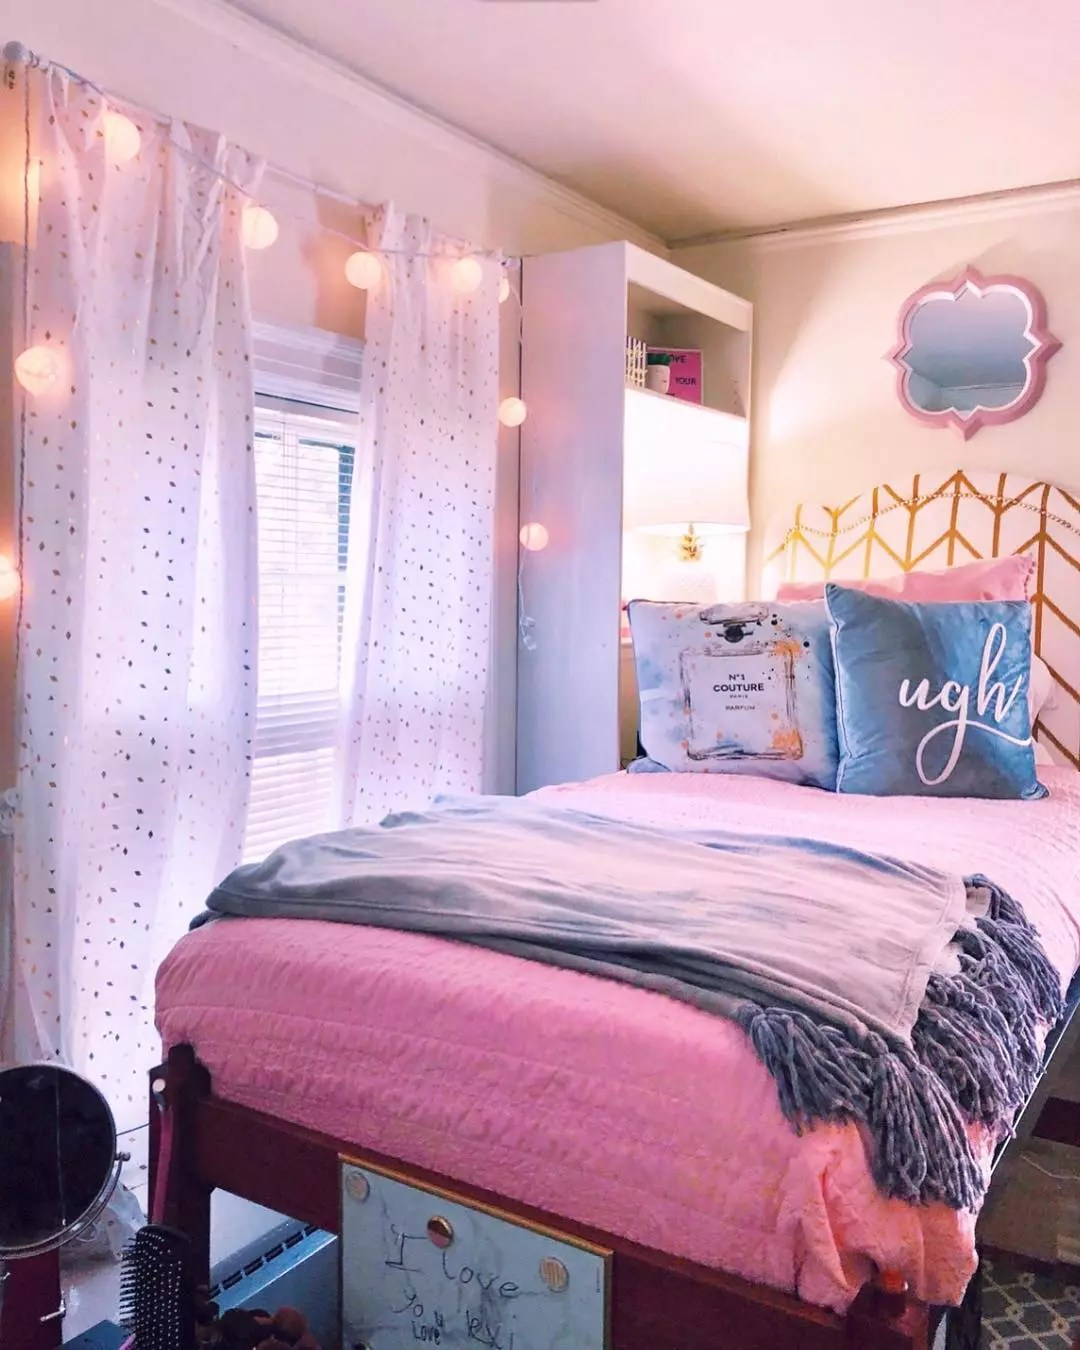 College Dorm Room with Stylish Polka Dot Curtains. Photo by Instagram user @lexigossom